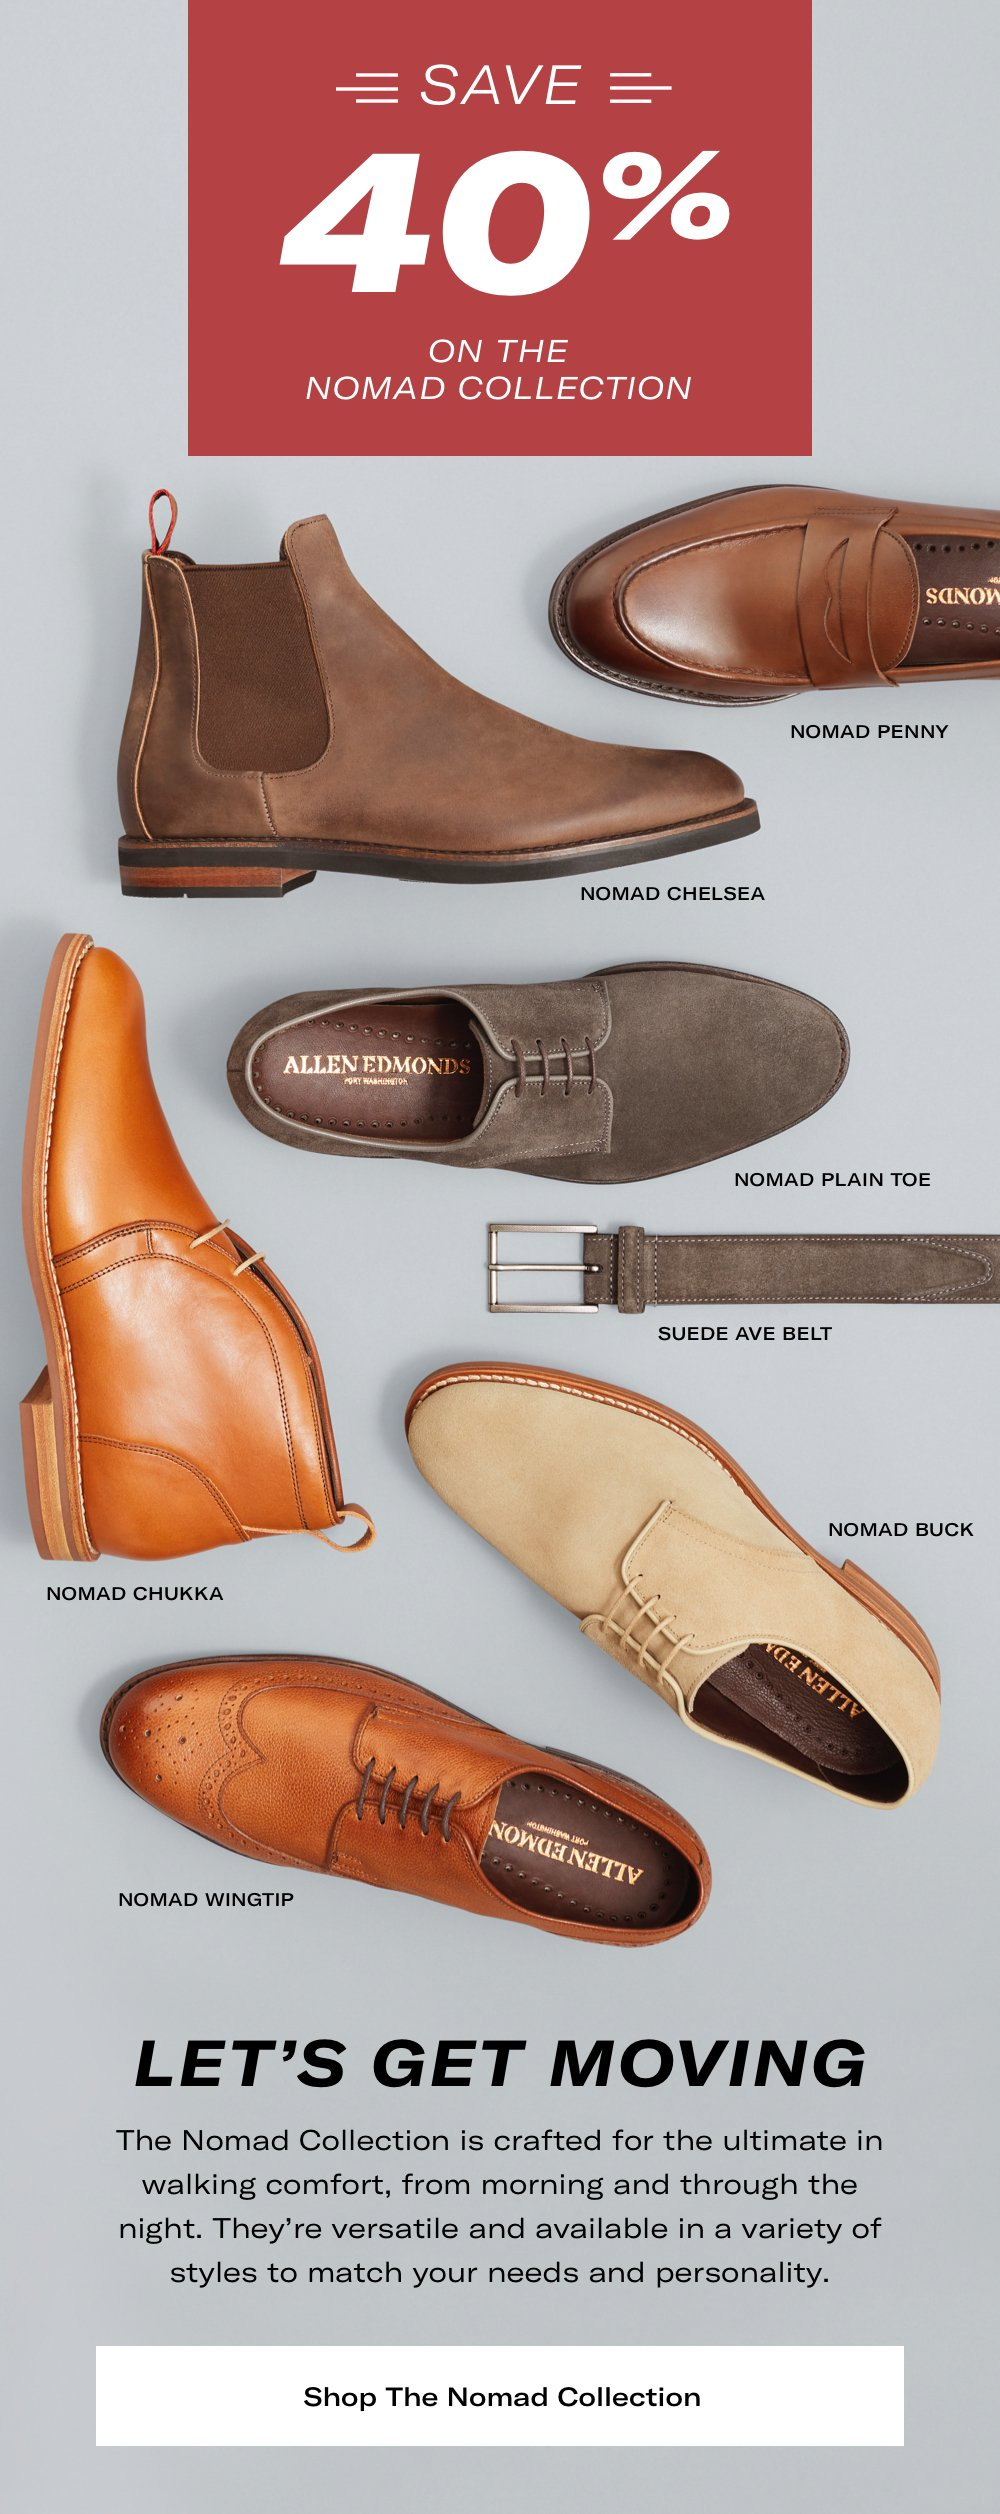 Let's Get Moving. Save 40% on the Nomad Collection